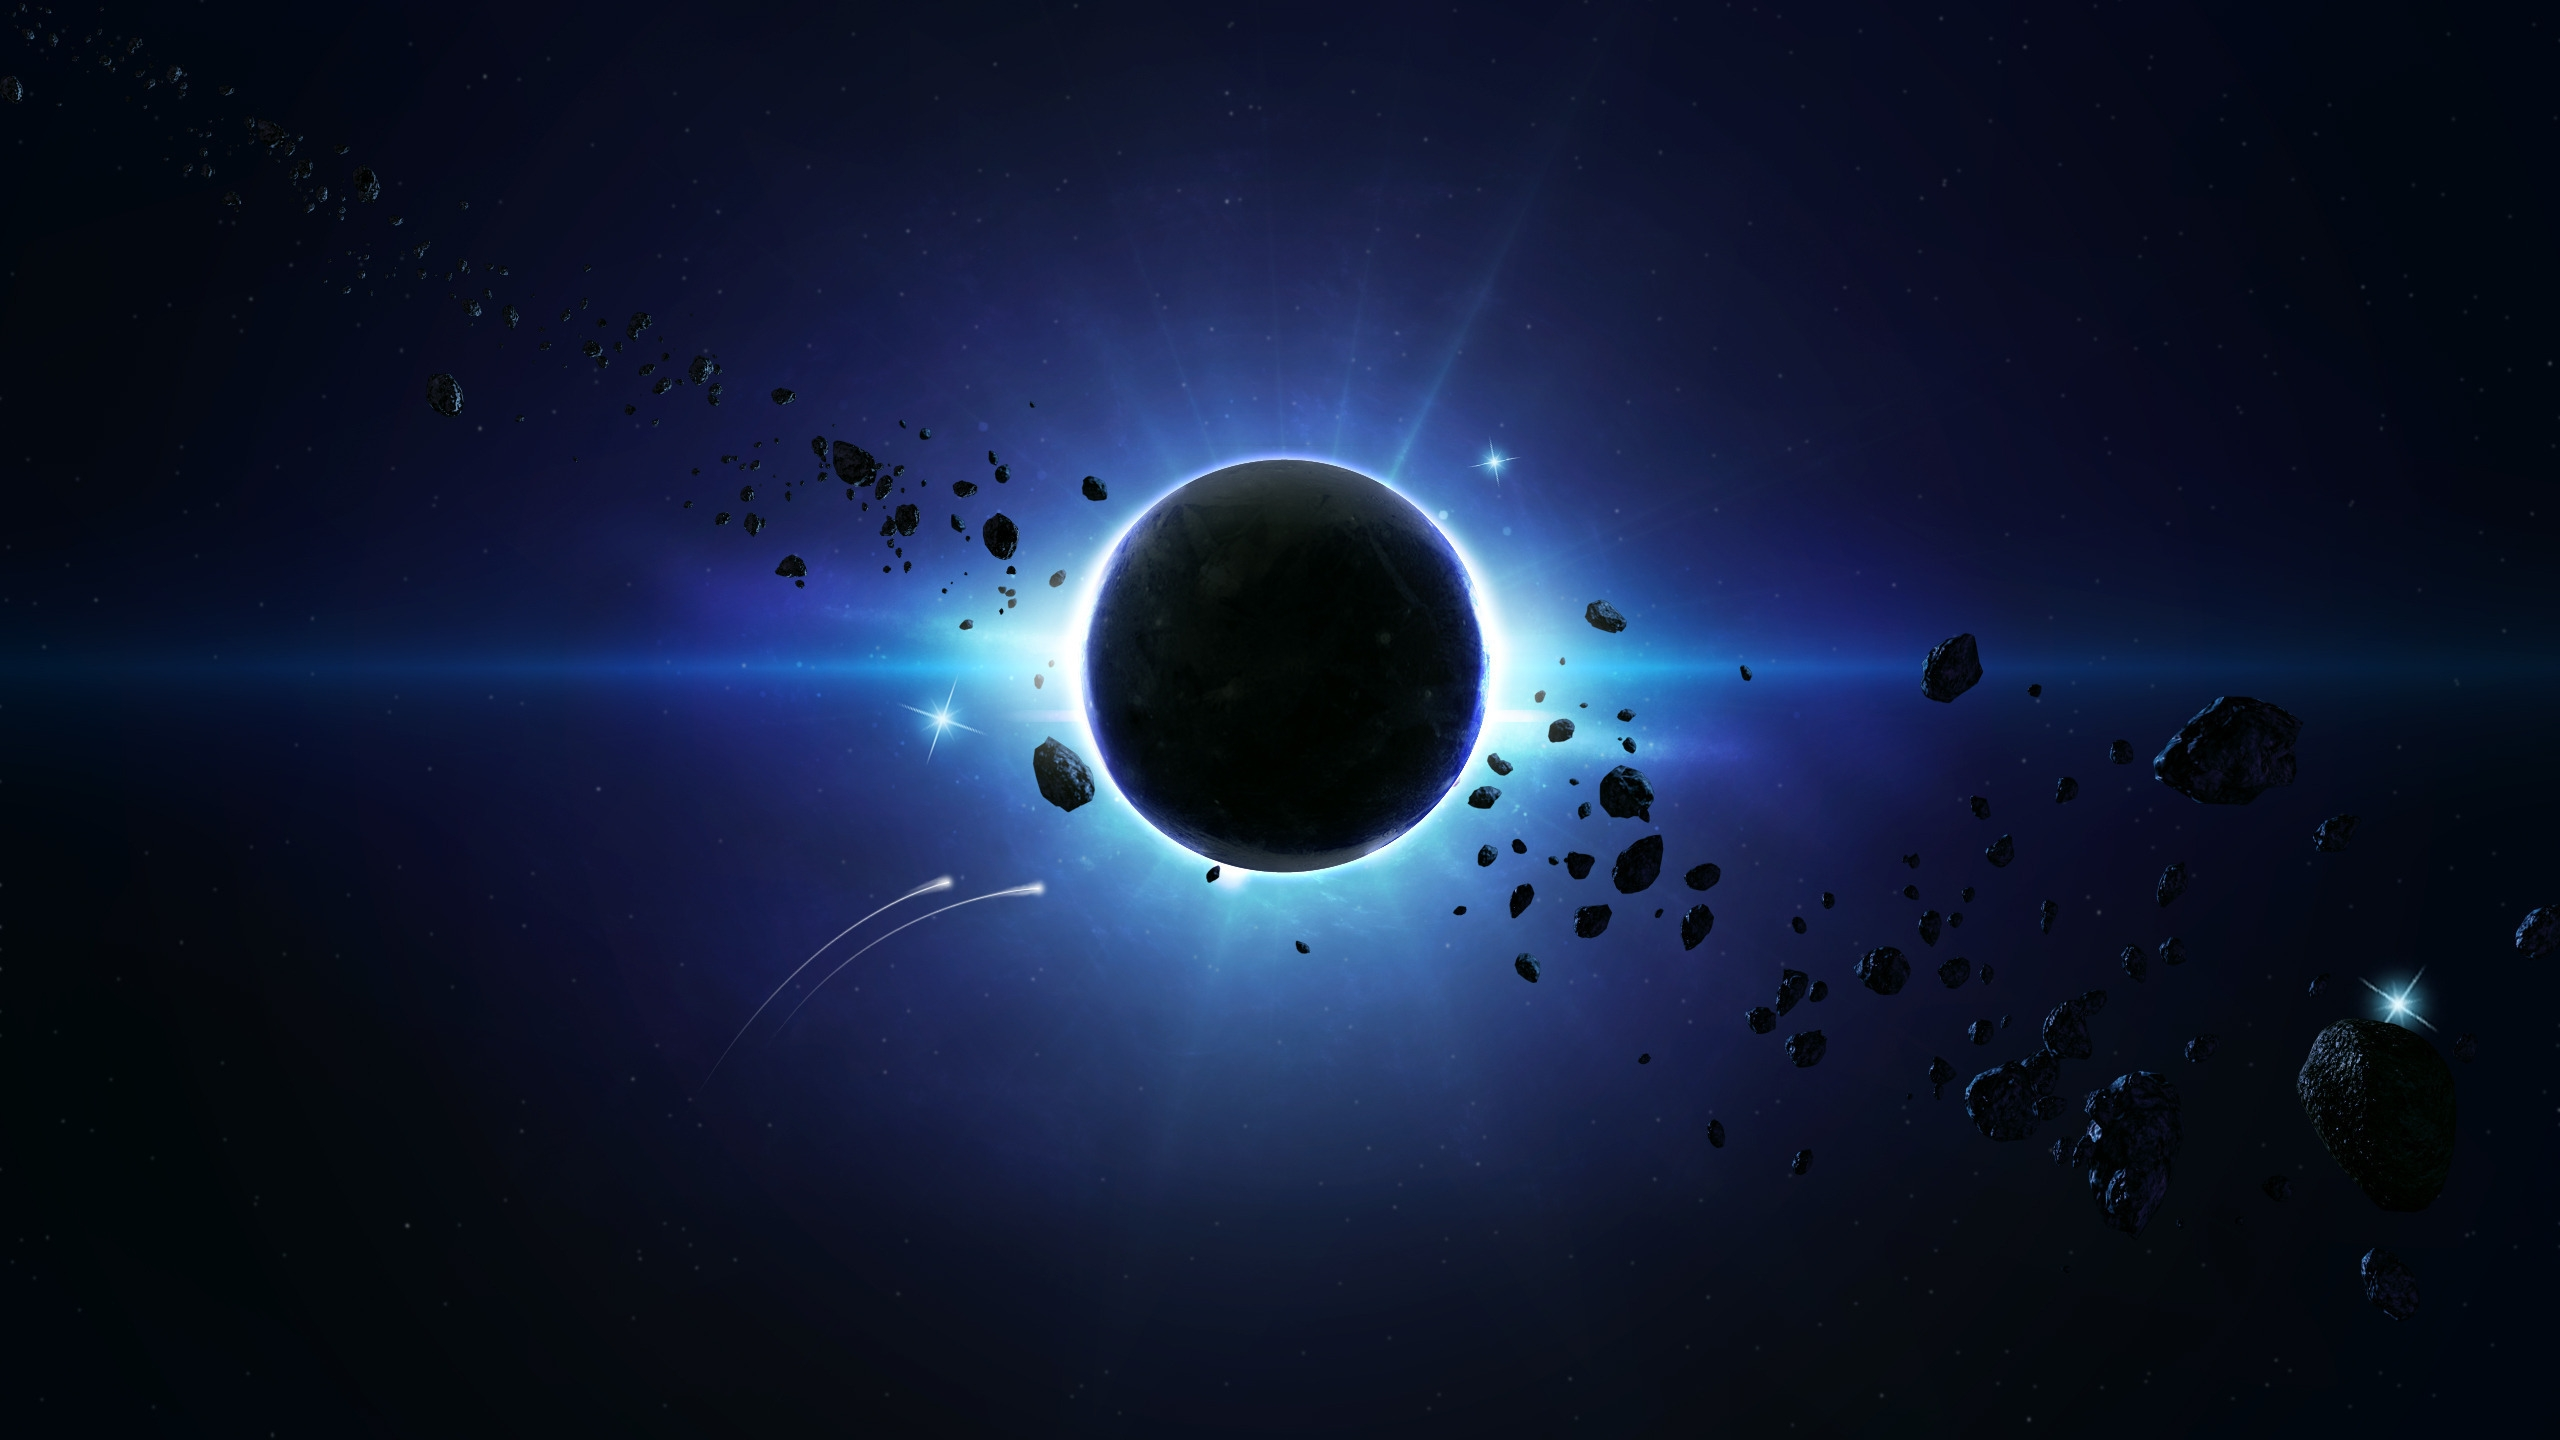 wallpaperstockneteclipse wallpapers 26124 2560x1440jpg 2560x1440